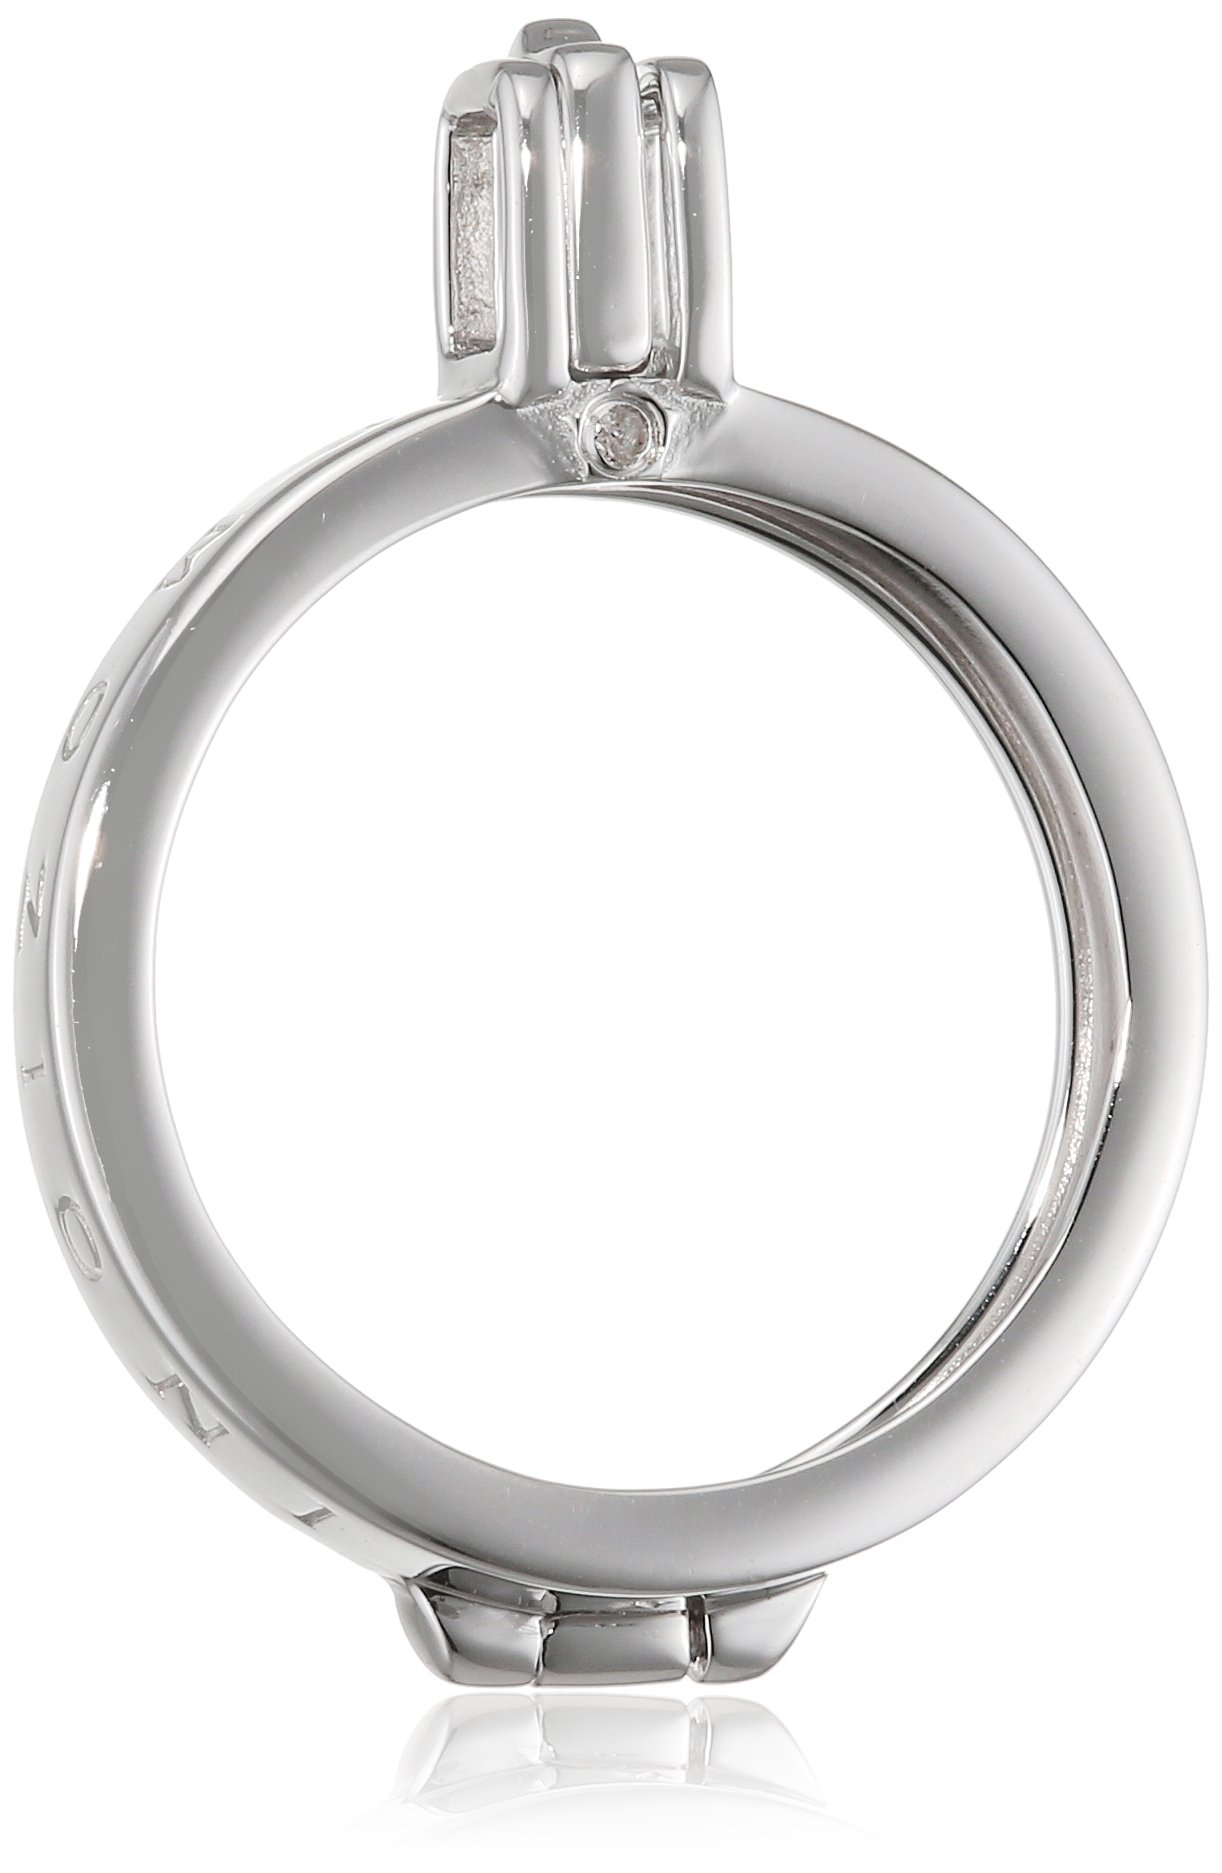 Emozioni Capri Sterling Silver 25mm Coin Keeper Pendant